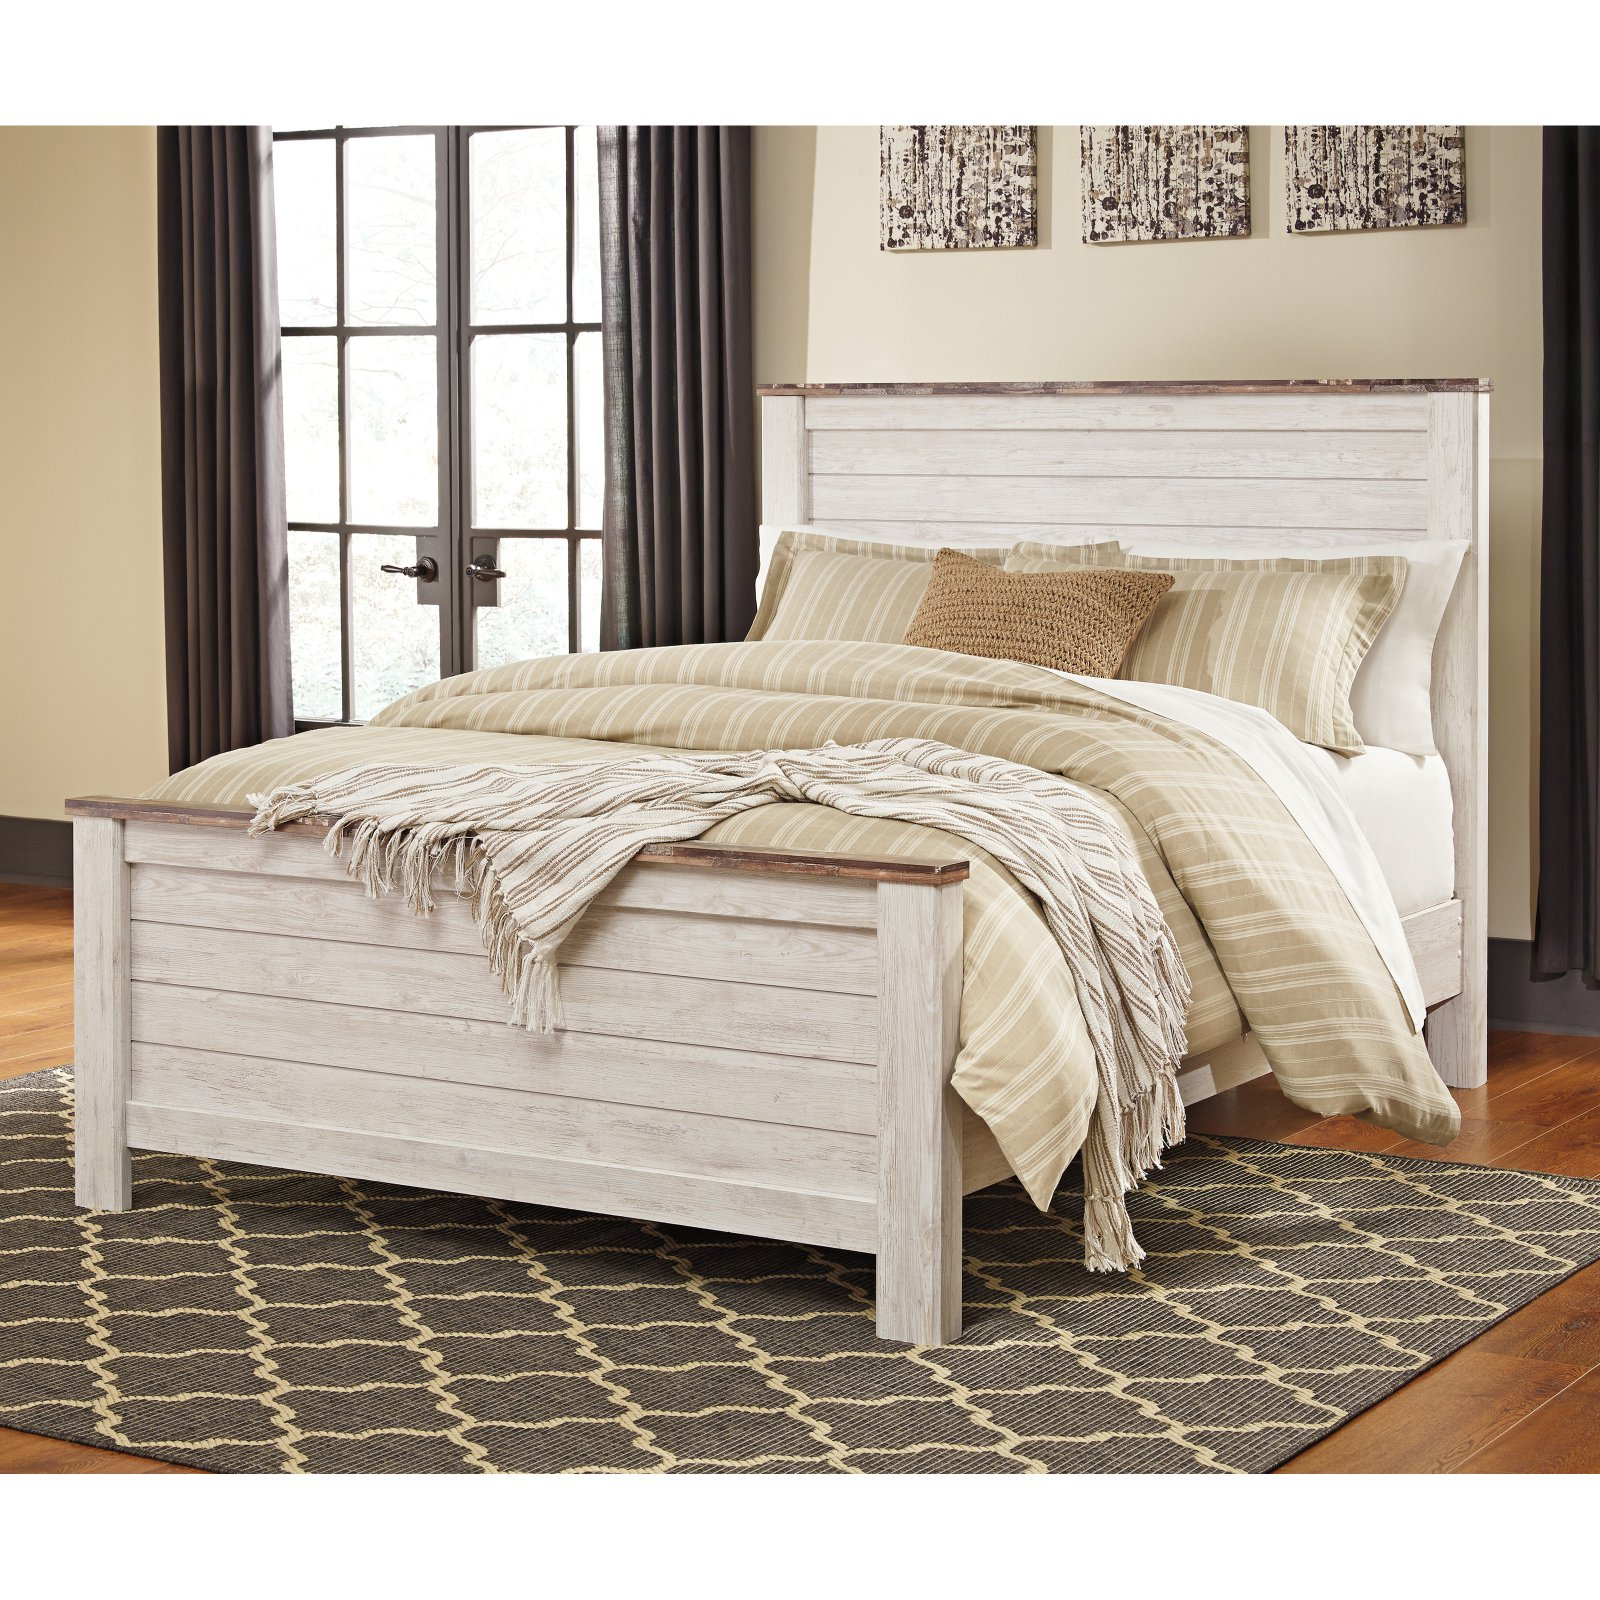 Signature Design by Ashley Willowton Slat Panel Headboard